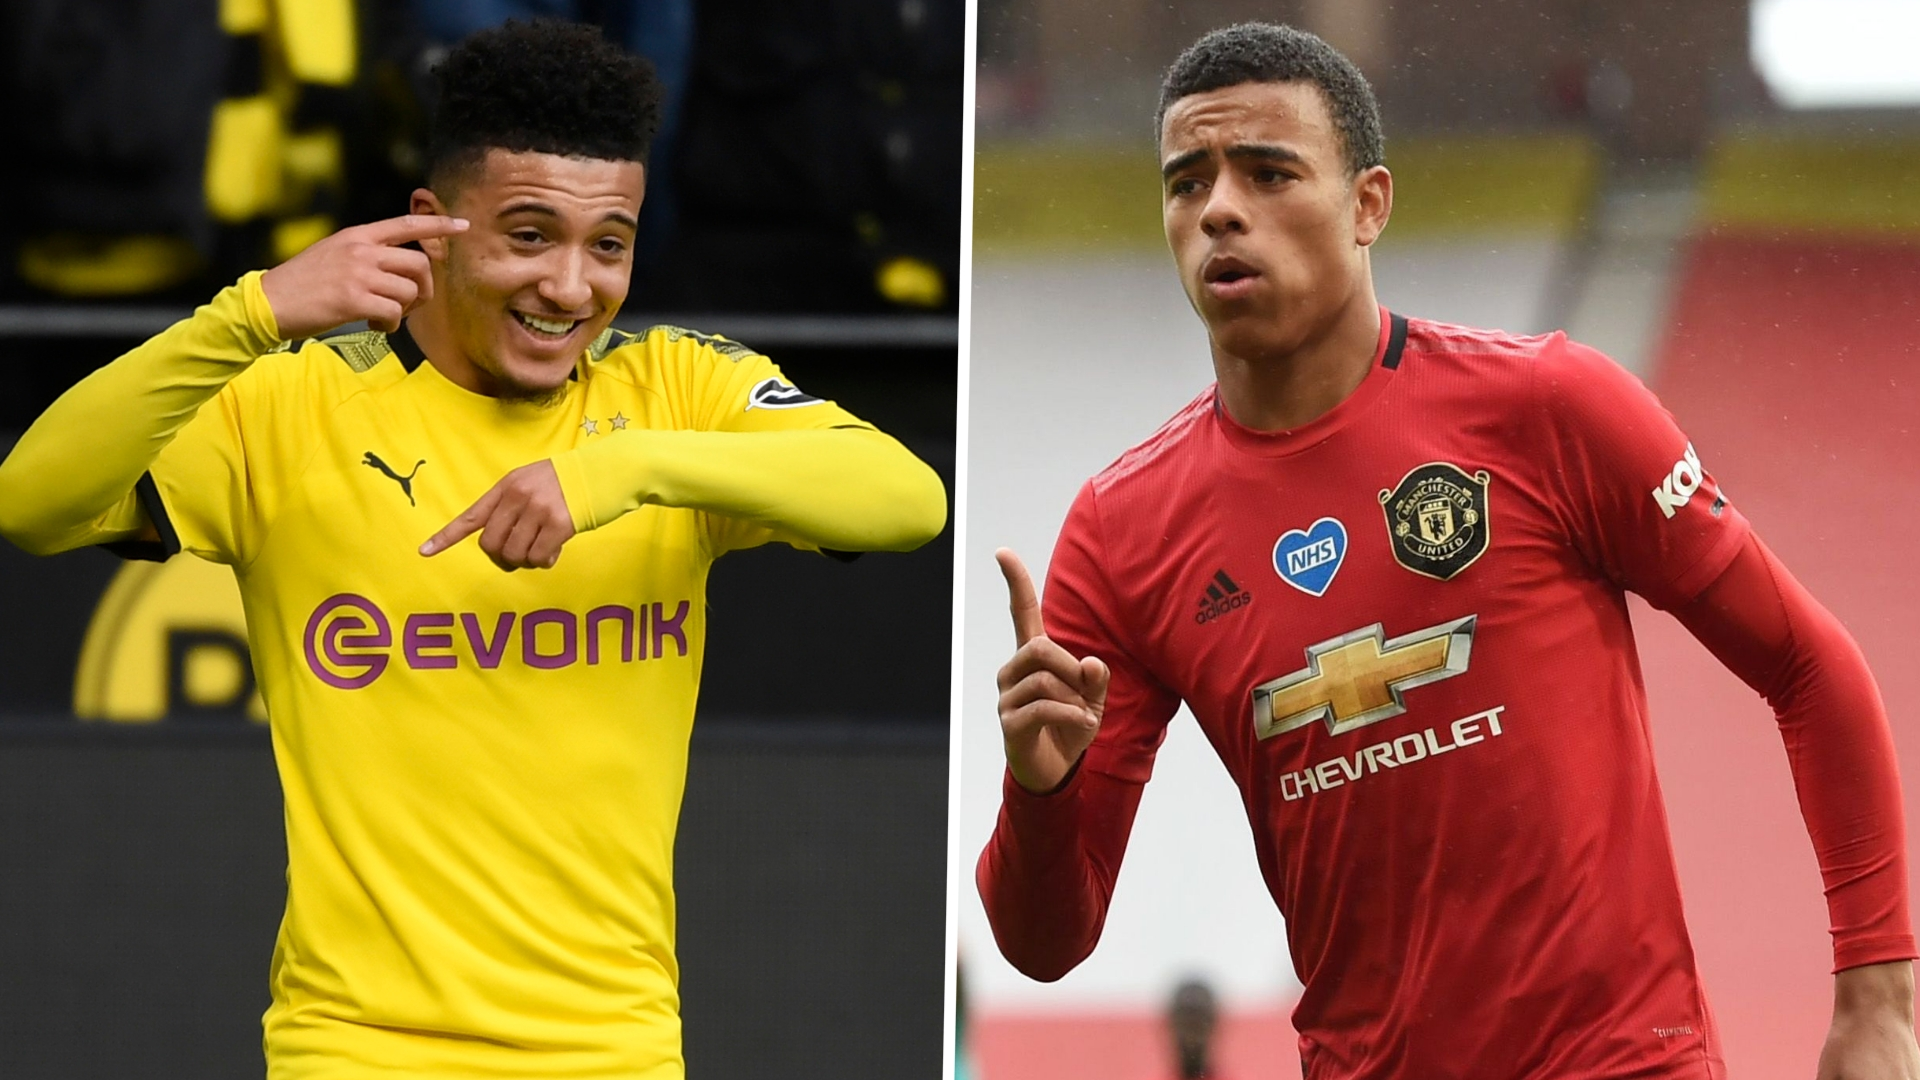 Manchester United's Mason Greenwood has a natural striker's killer instinct